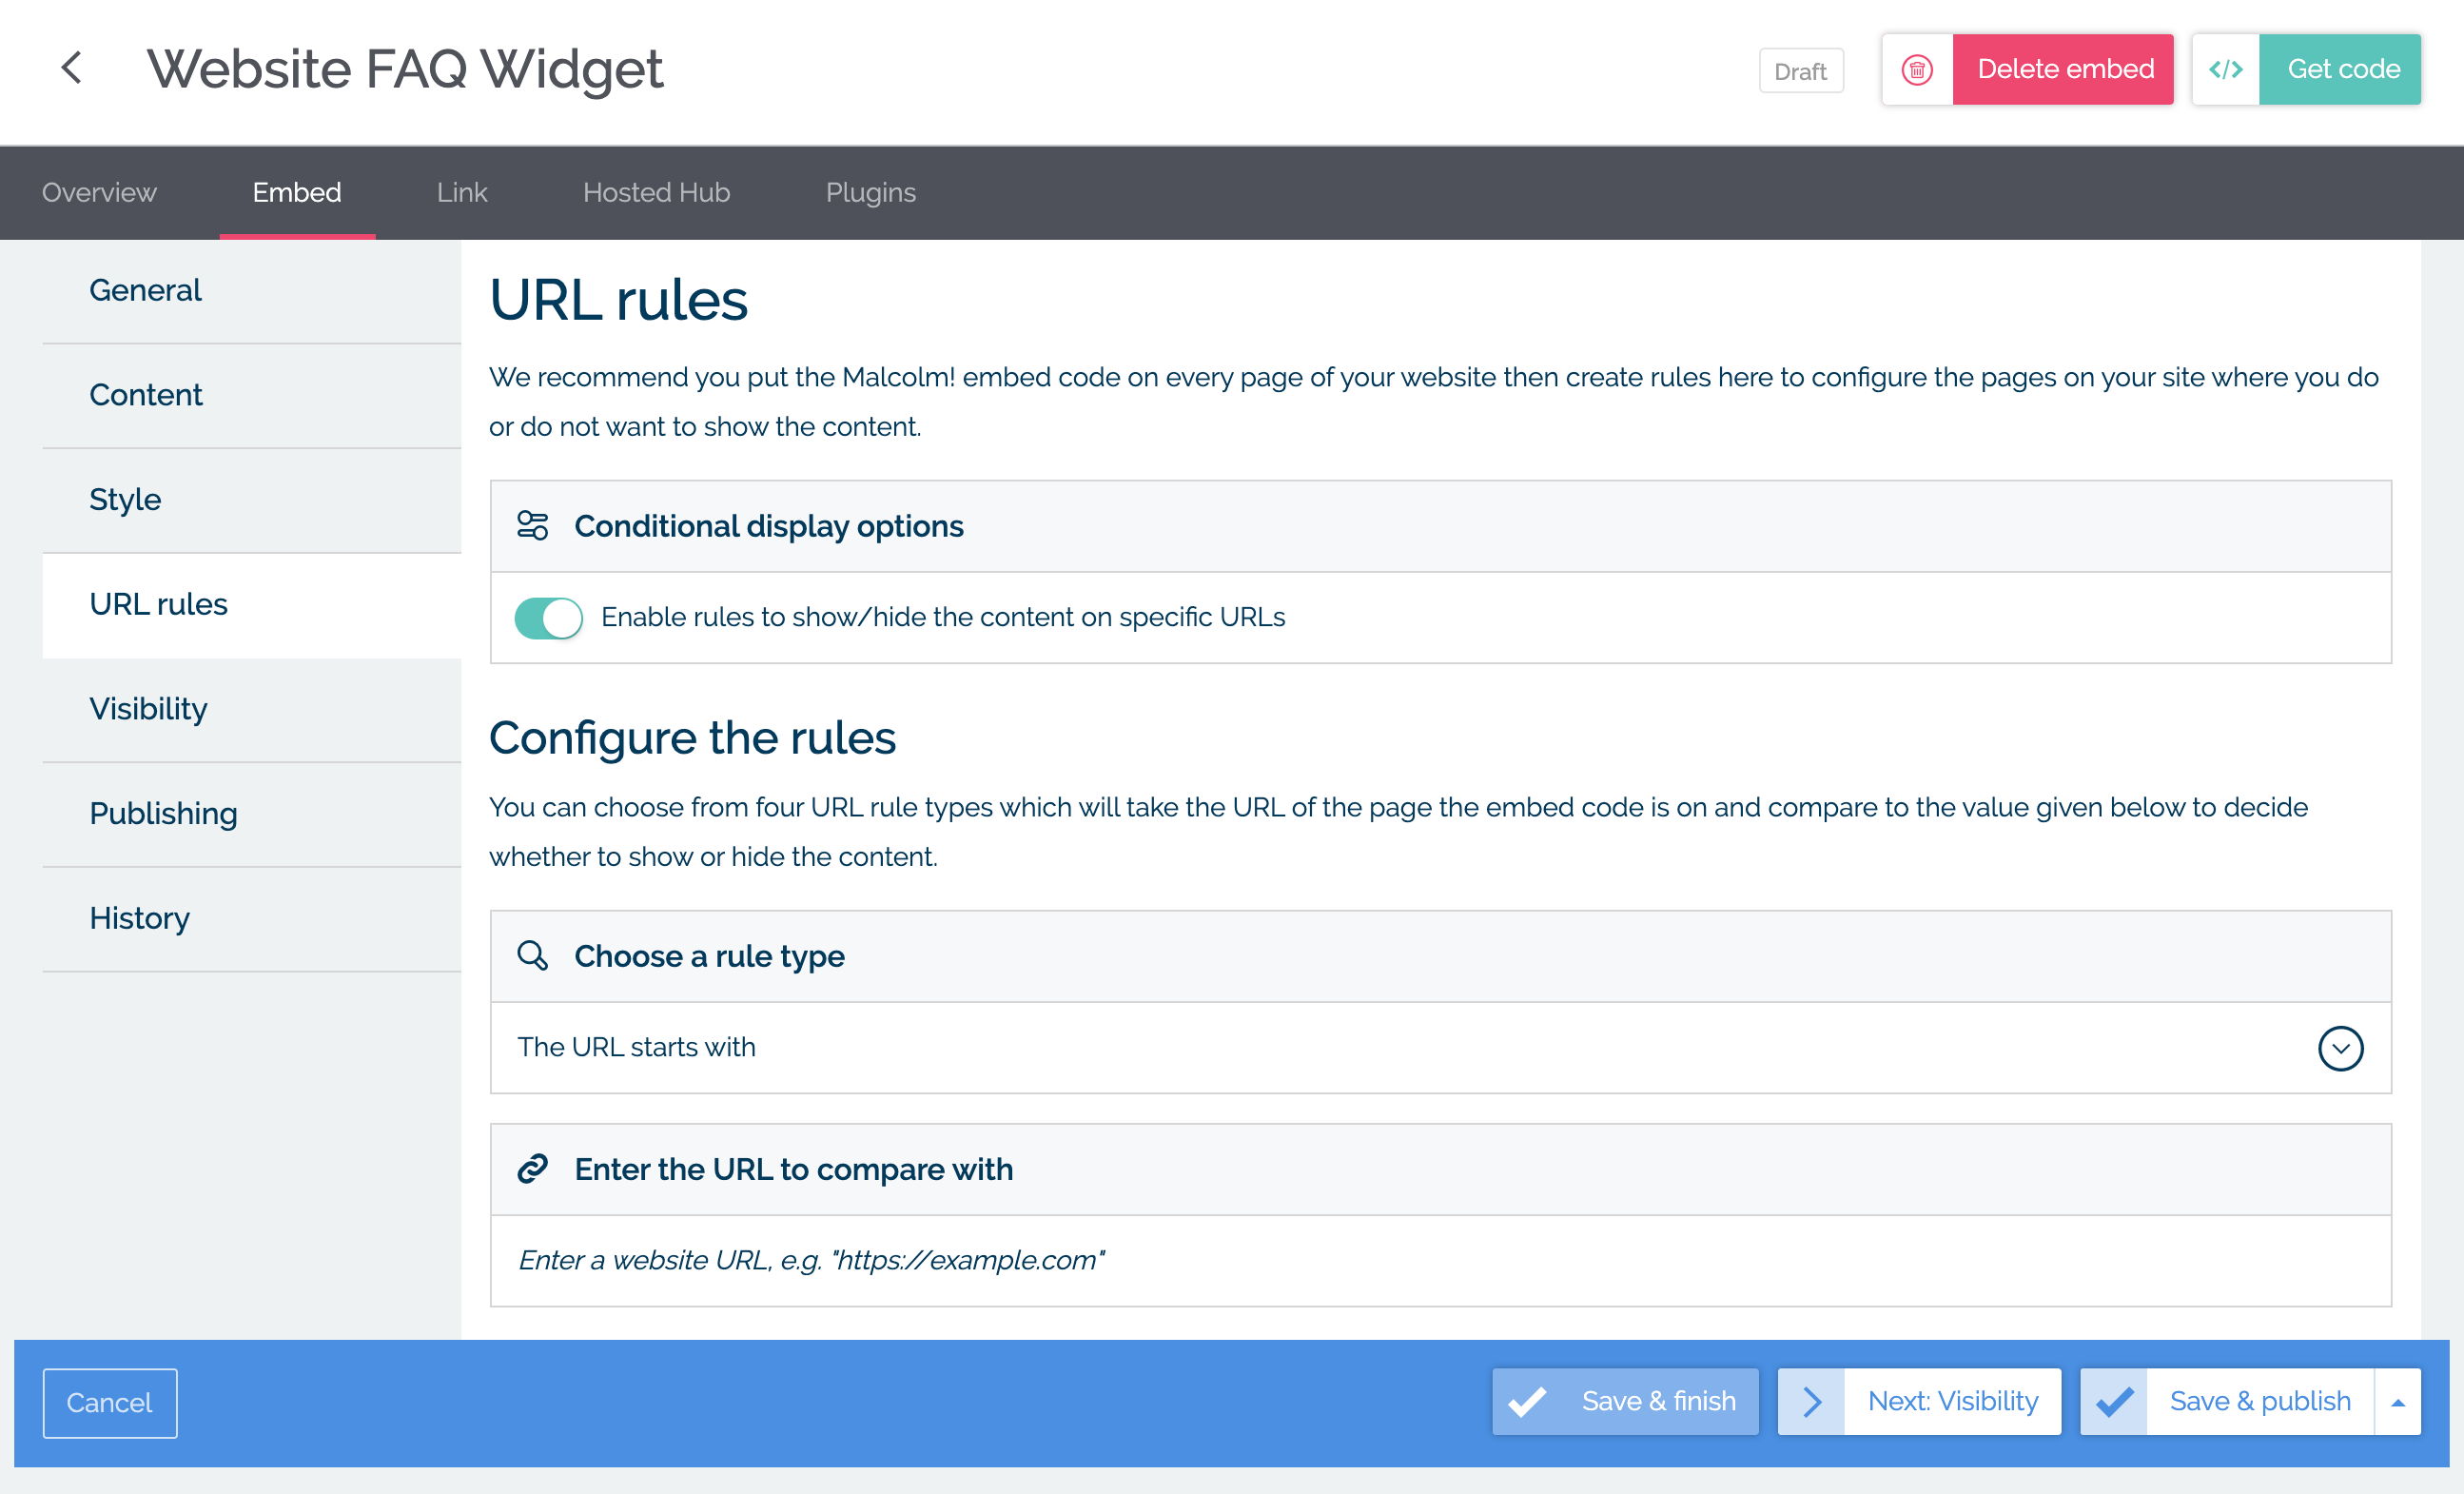 Manage URL rules for your widget